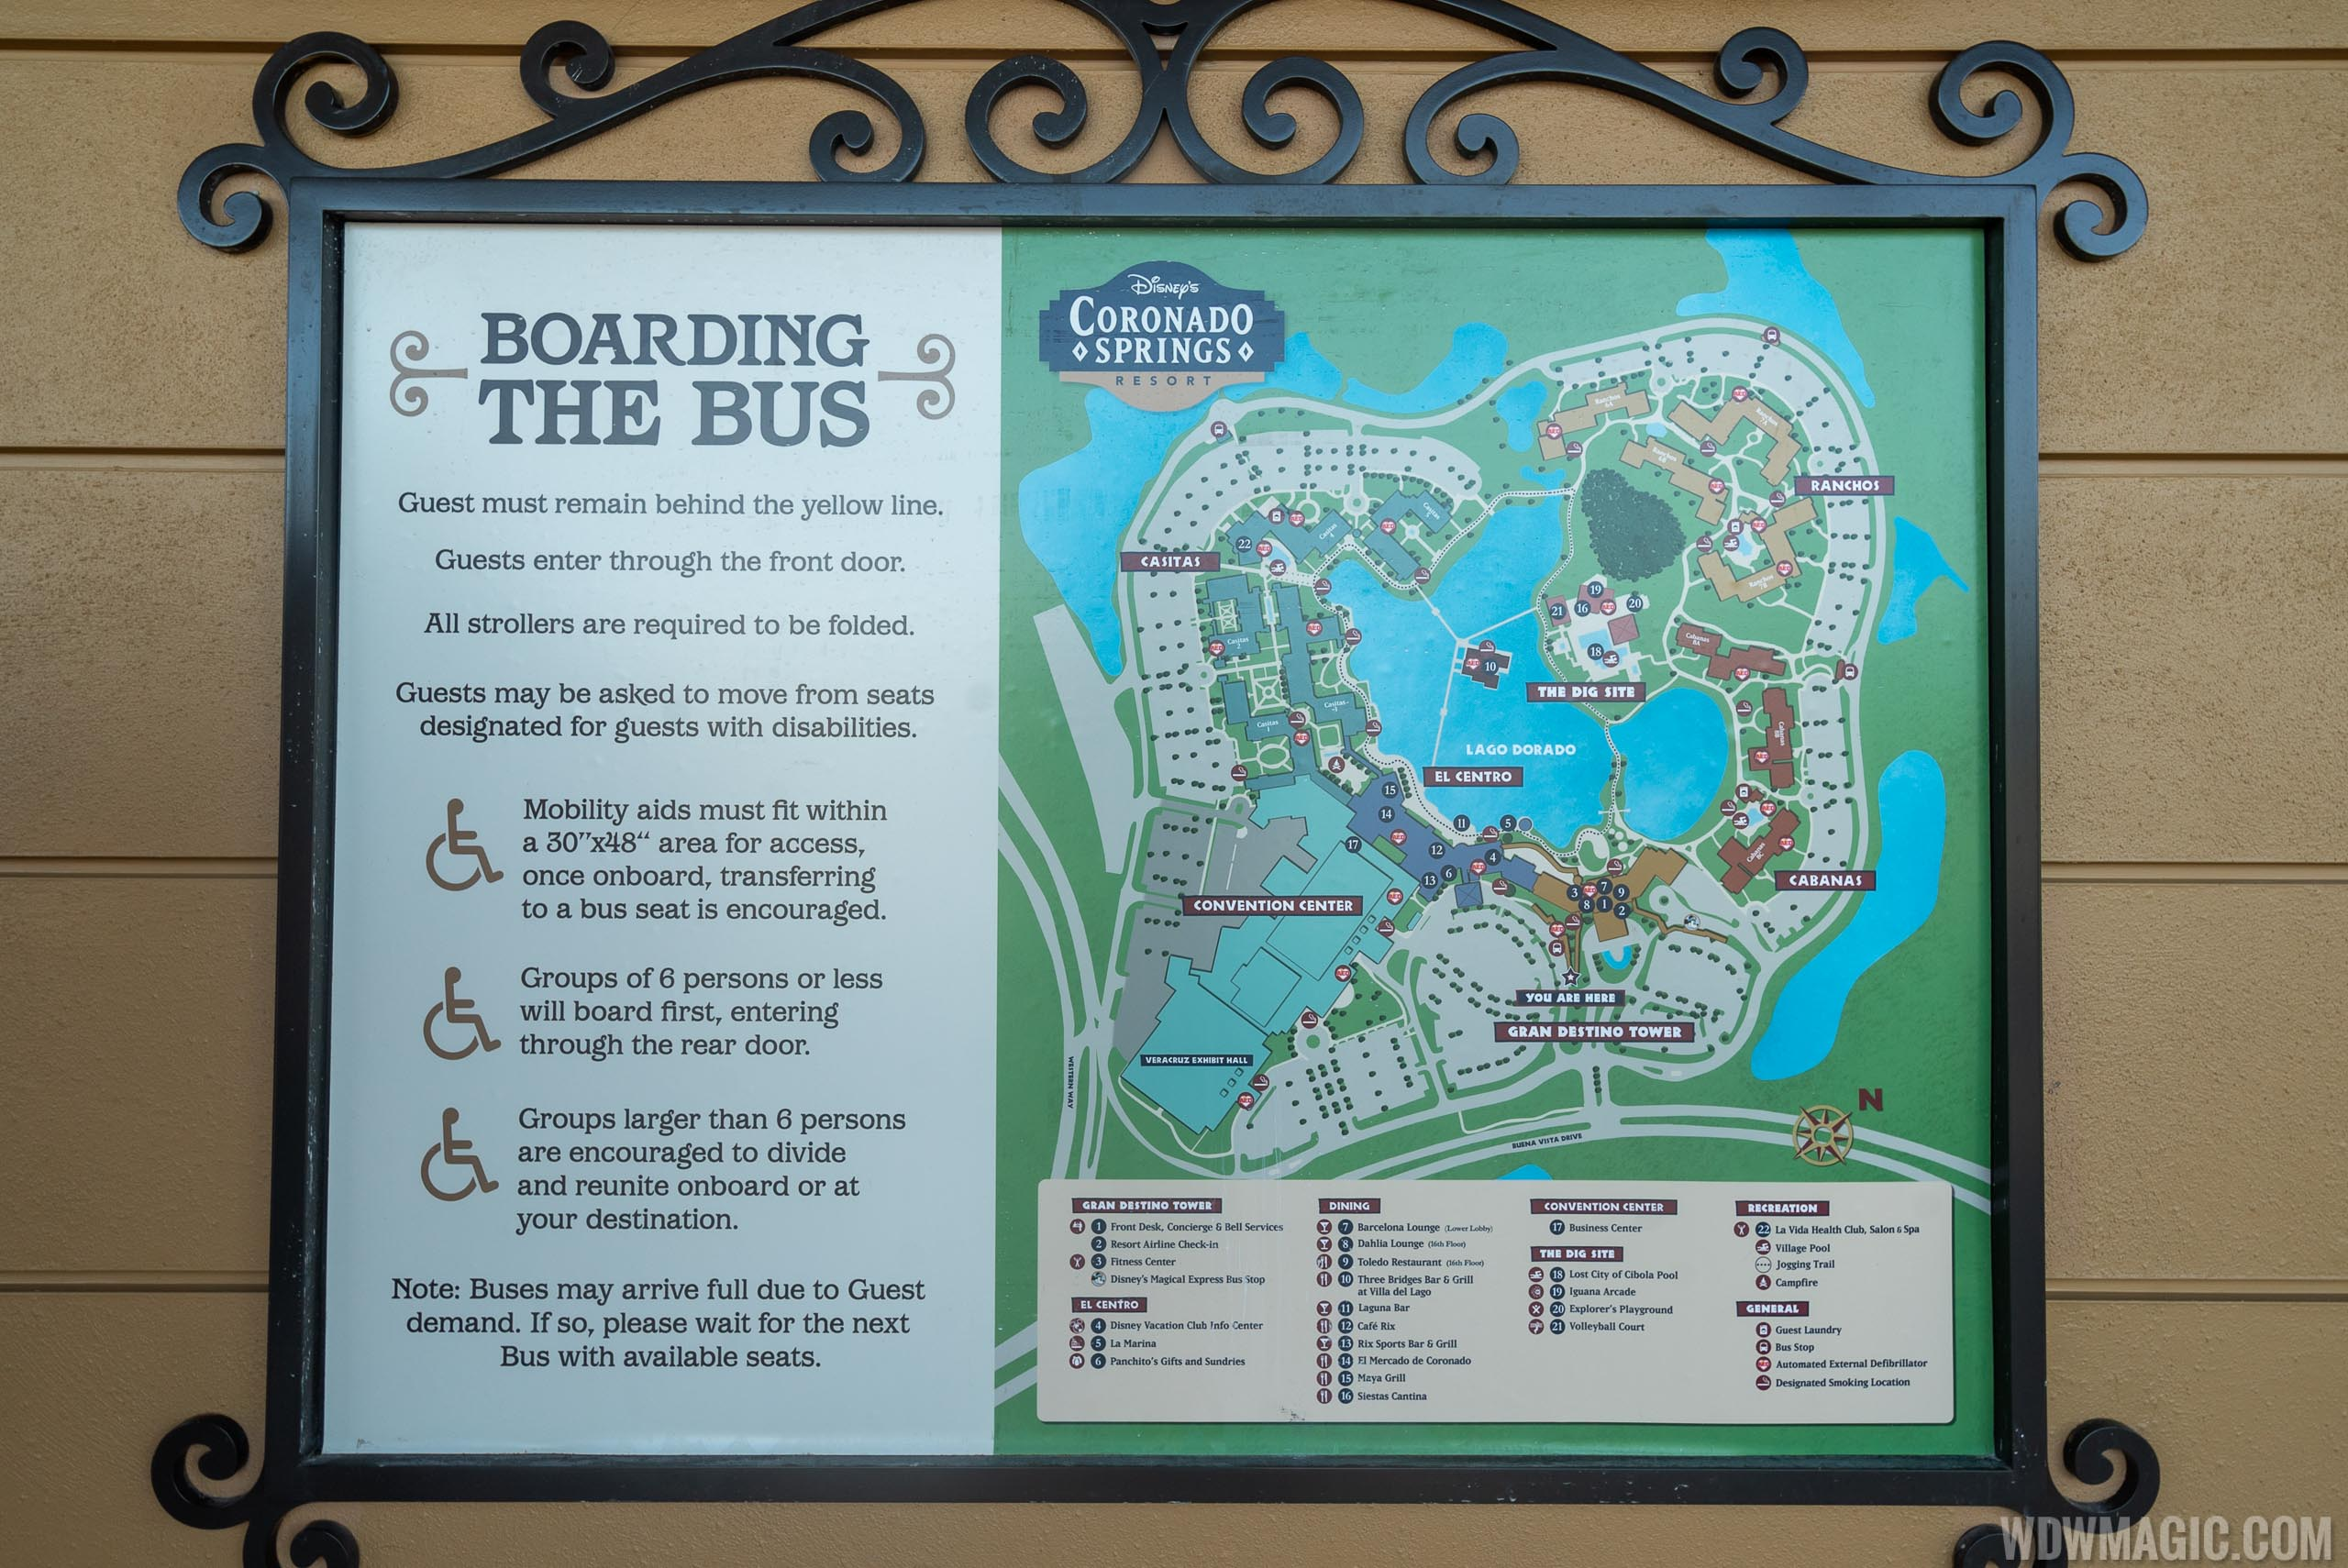 New Coronado Springs check-in and bus stops at Gran Destino ... on disney art of animation map, disney grand floridian map, disney shades of green map, disney wilderness lodge map, disney treehouse villas map, disney pop century map, disney florida map, disney fort wilderness map, disney port orleans map, disney california map, disney disneyland map, disney world orlando area map, disney polynesian map, walt disney world satellite map, disney blizzard beach map, walt disney world speedway map, disney epcot map, coronado national forest map, disney beach club villas map, disney boardwalk inn map,